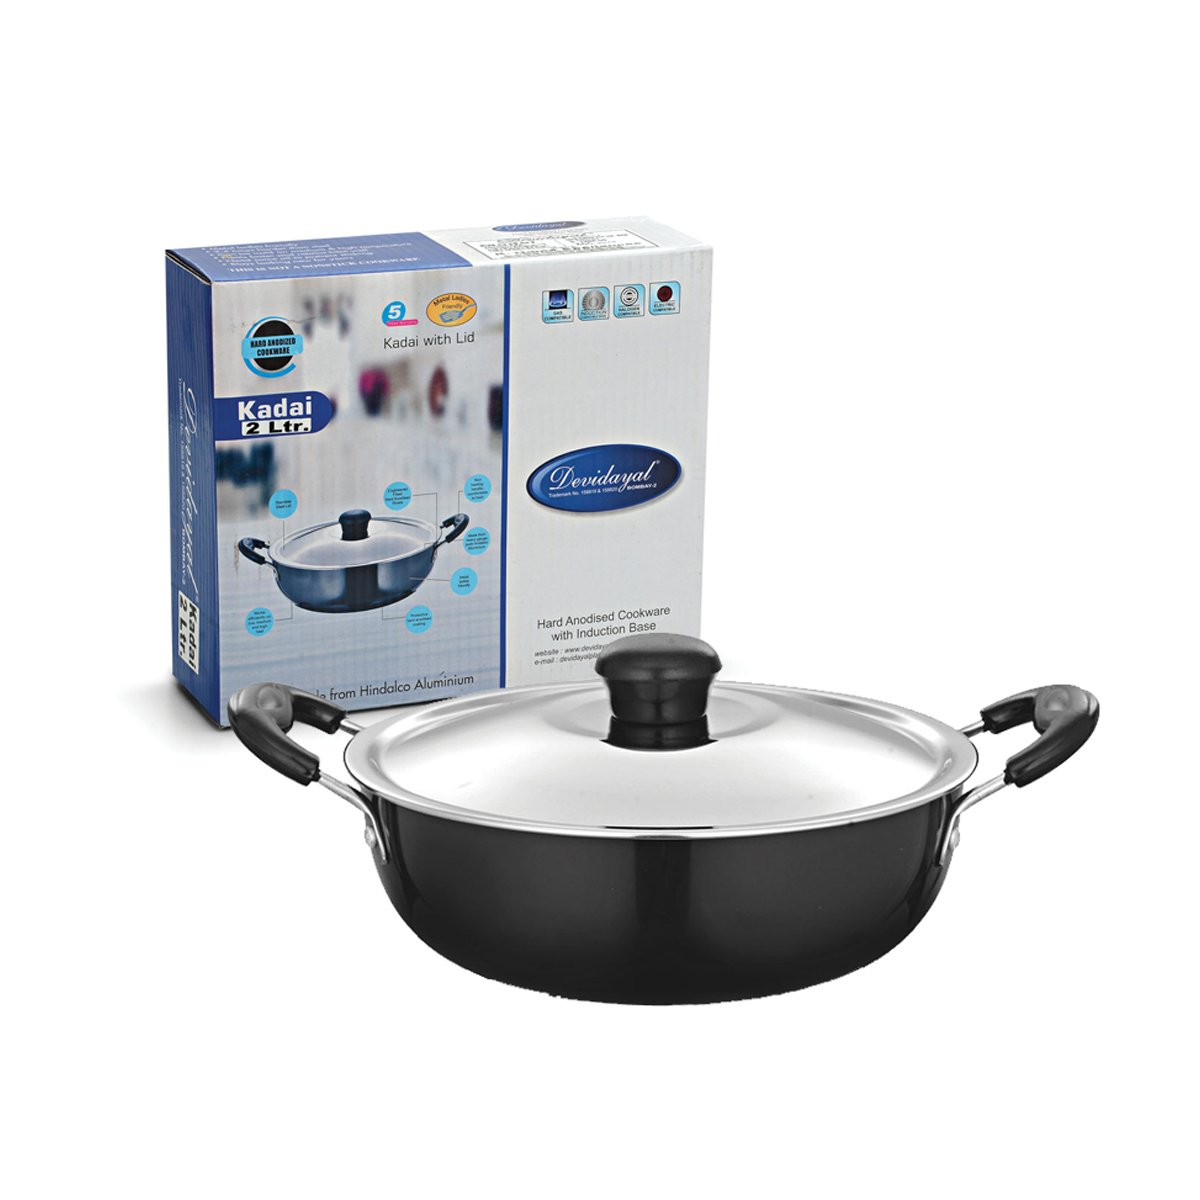 DeviDayal l Induction Base Hard Anodized Deep Kadai With Lid-(3 Liter)